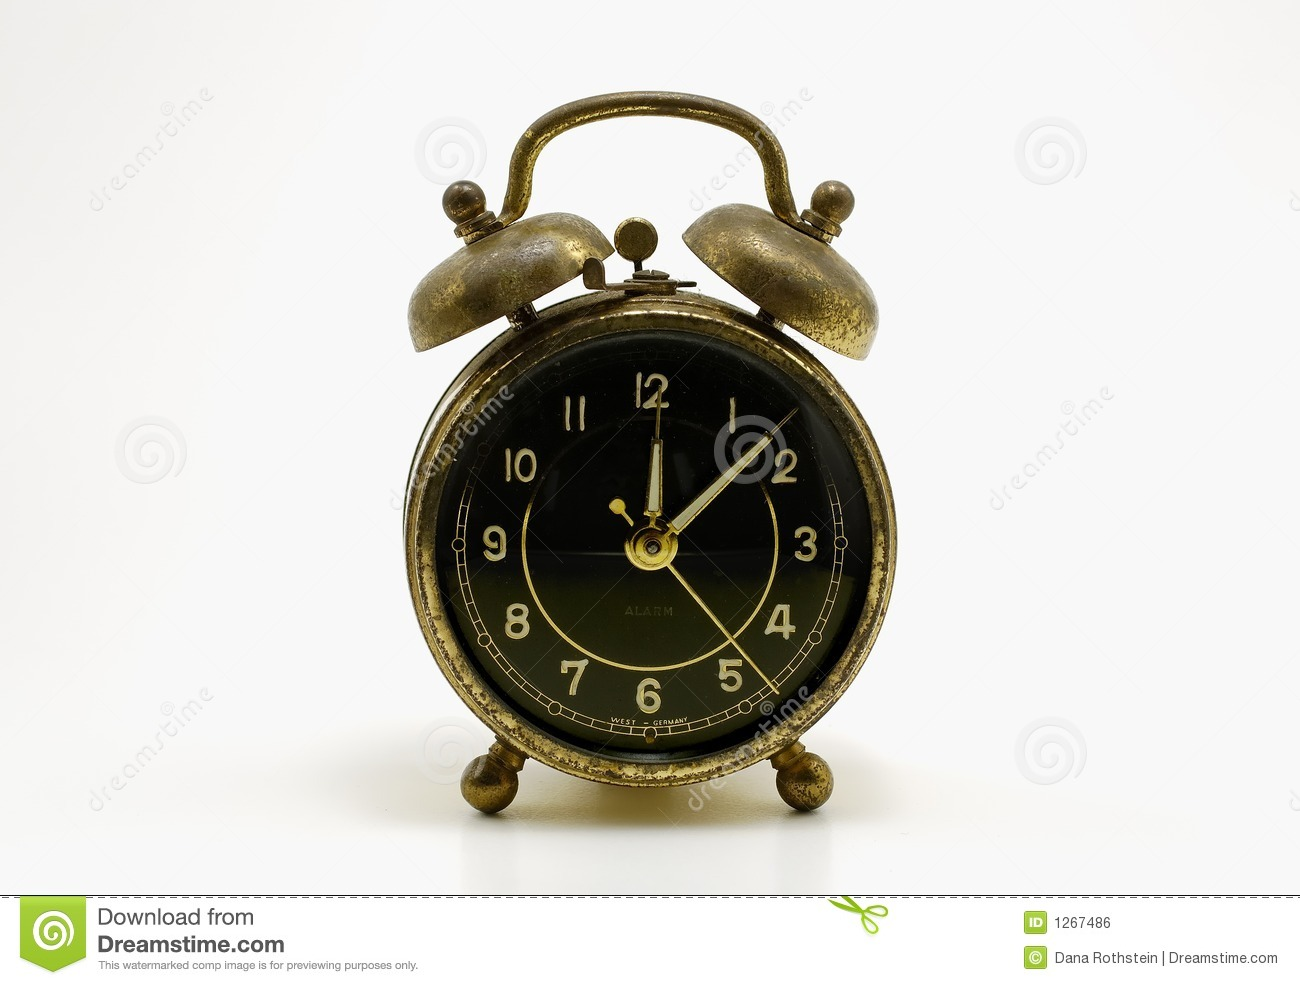 Antique Alarm Clock Royalty Free Stock Image - Image: 1267486